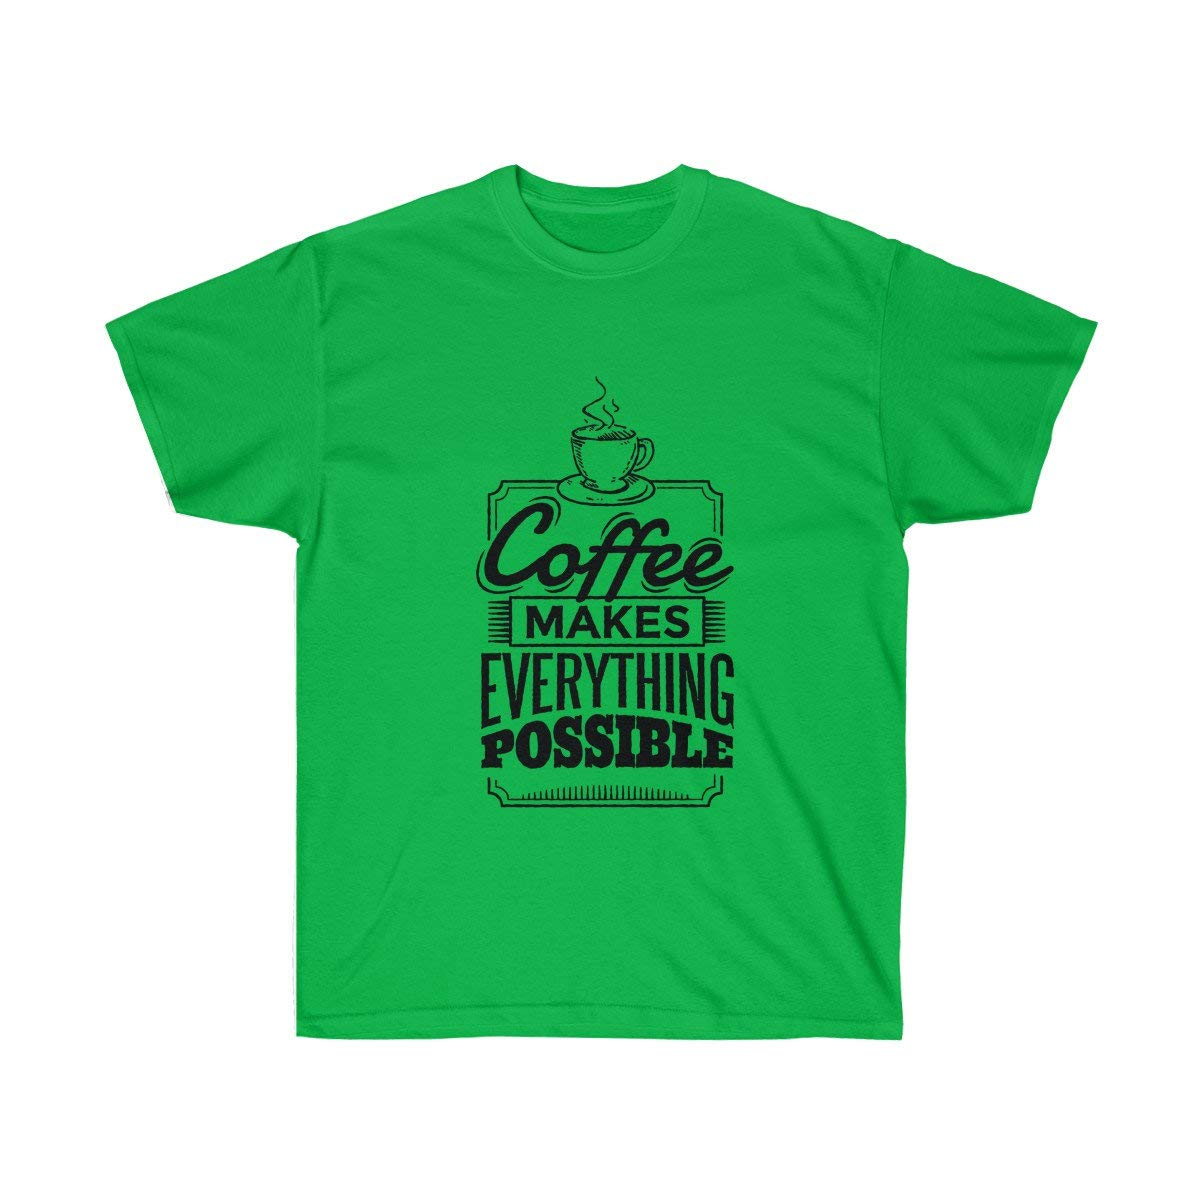 Tee Coffee Makes Everything Possible Tshirt